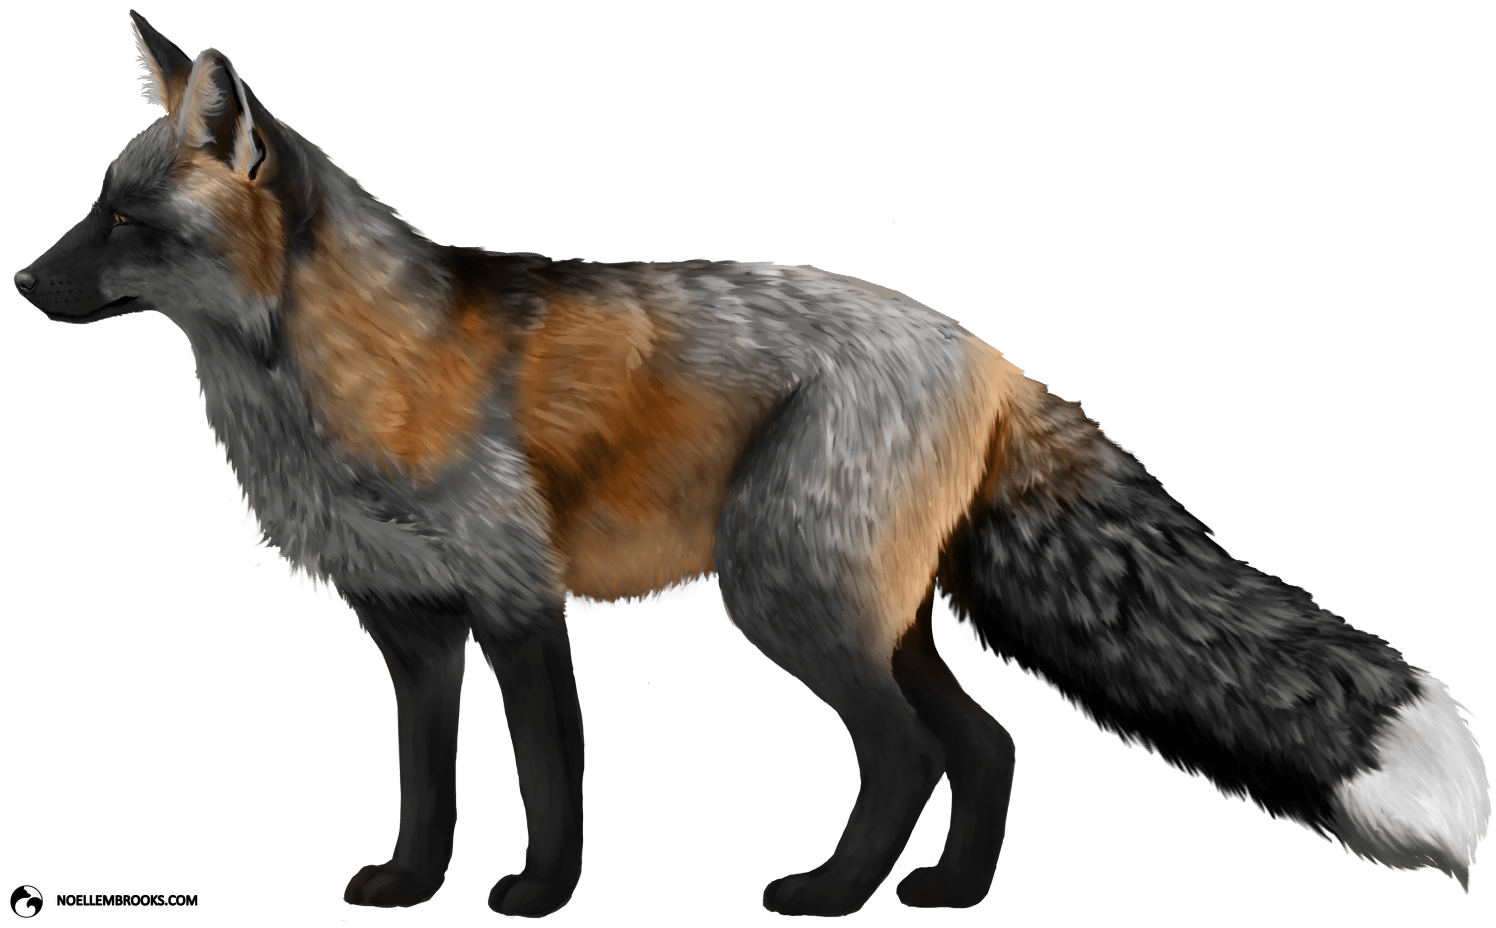 Swiper the Silver Cross-Colored Ranched Red Fox